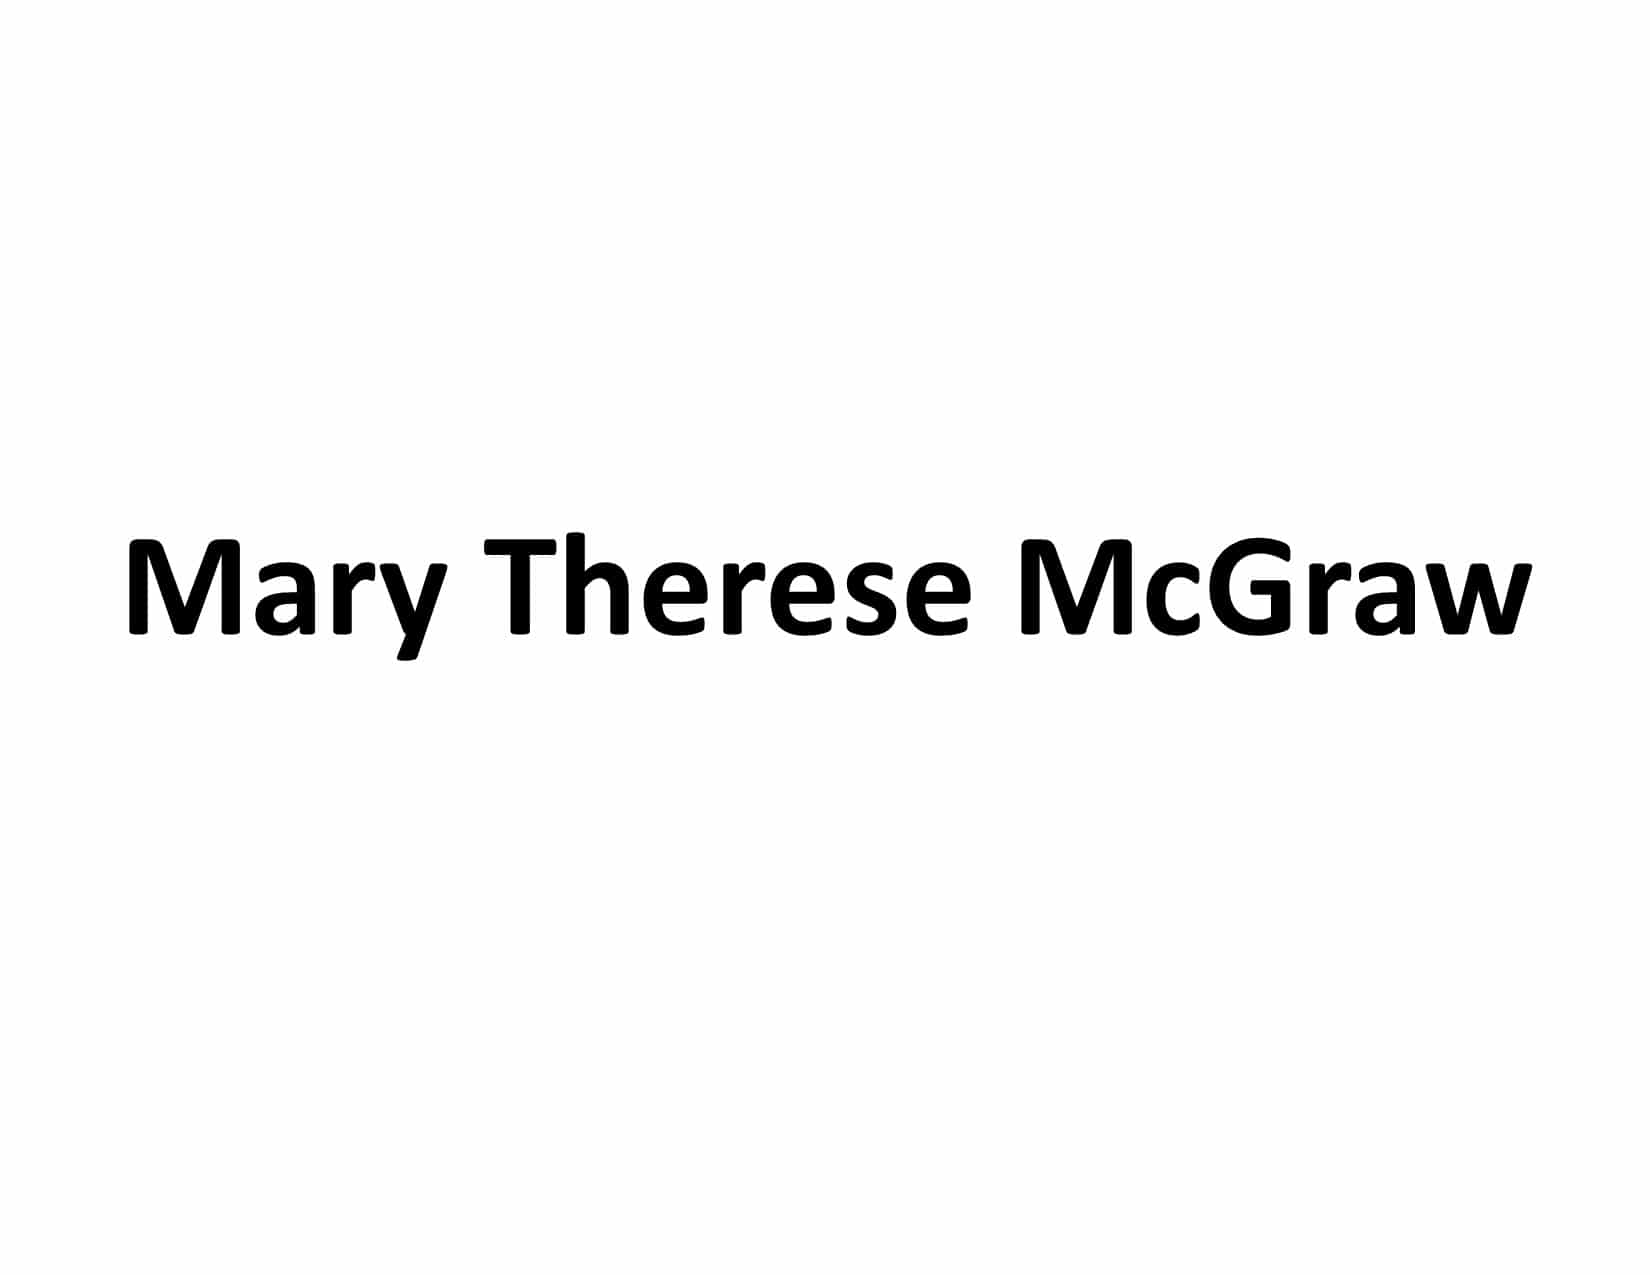 Mary Therese McGraw